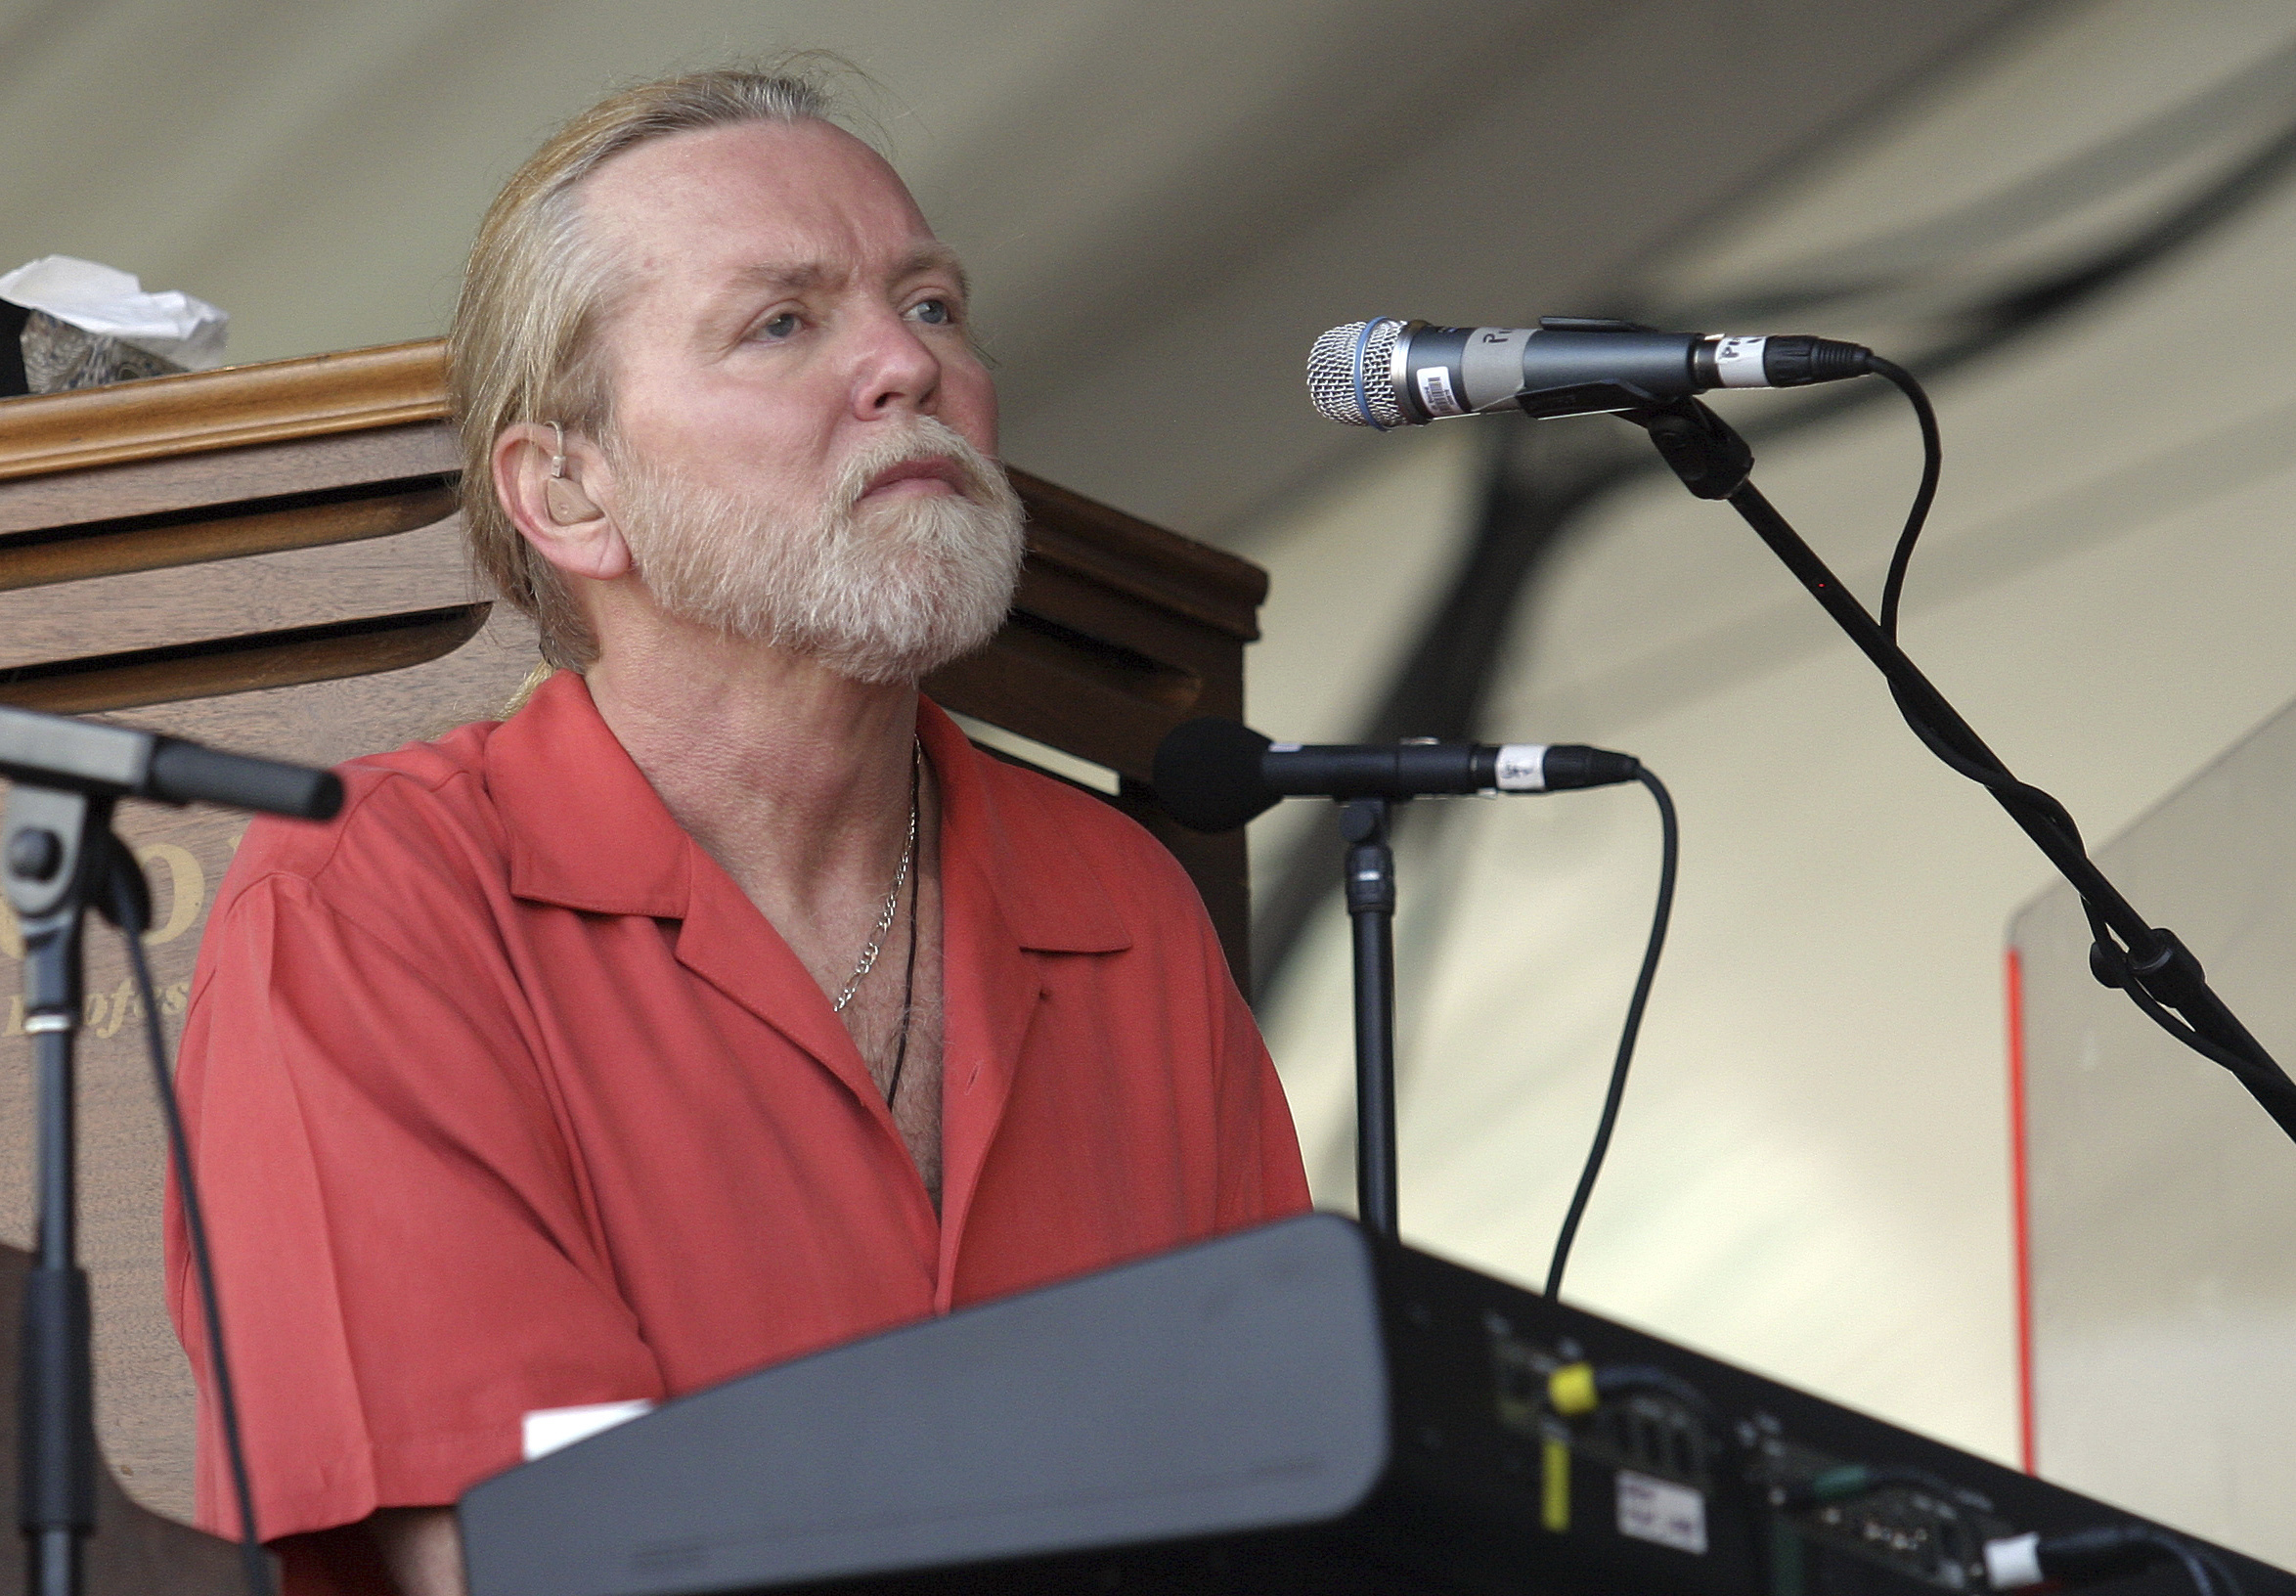 FILE - In this Saturday, May 5, 2007 file photo, Gregg Allman of the Allman Brothers performs during the 2007 Jazz and Heritage Festival in New Orleans. On Saturday, May 27, 2017, a publicist said the musician has died. (AP Photo/Dave Martin)